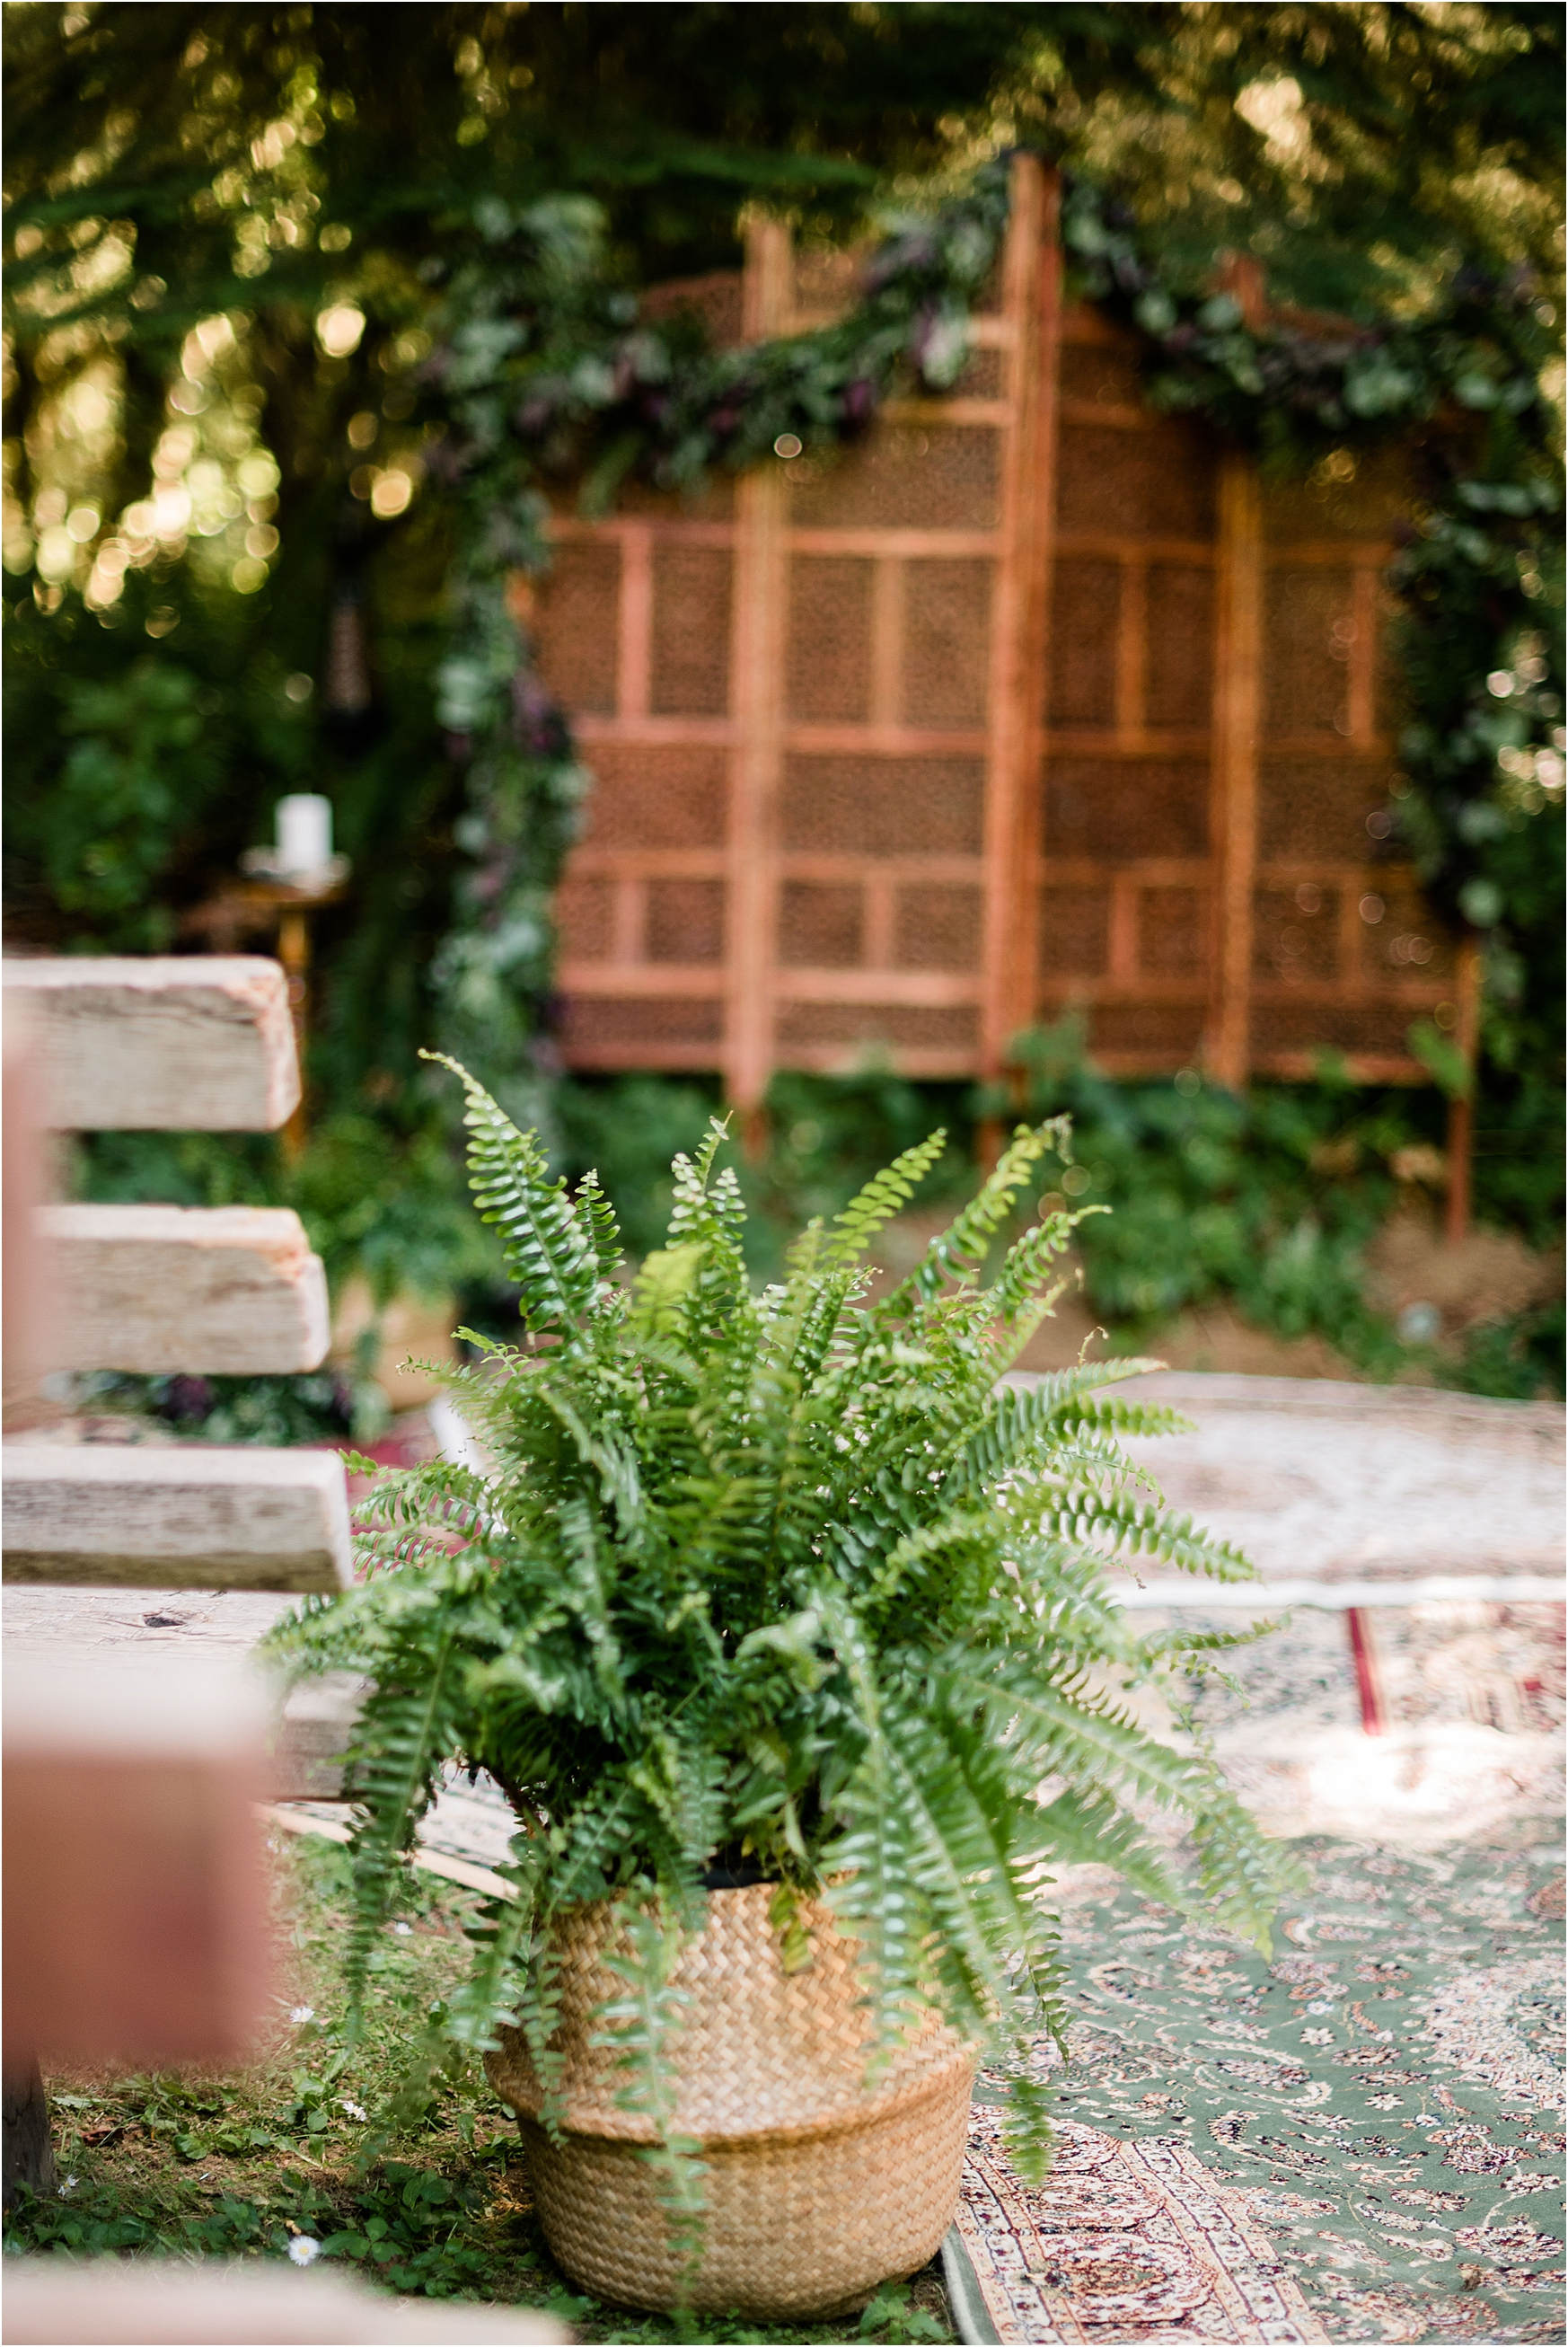 Baskets of ferns as ceremony decor at Cassy & Viva's bohemian Oregon destination wedding at Camp Lane. Image by Forthright Photo.